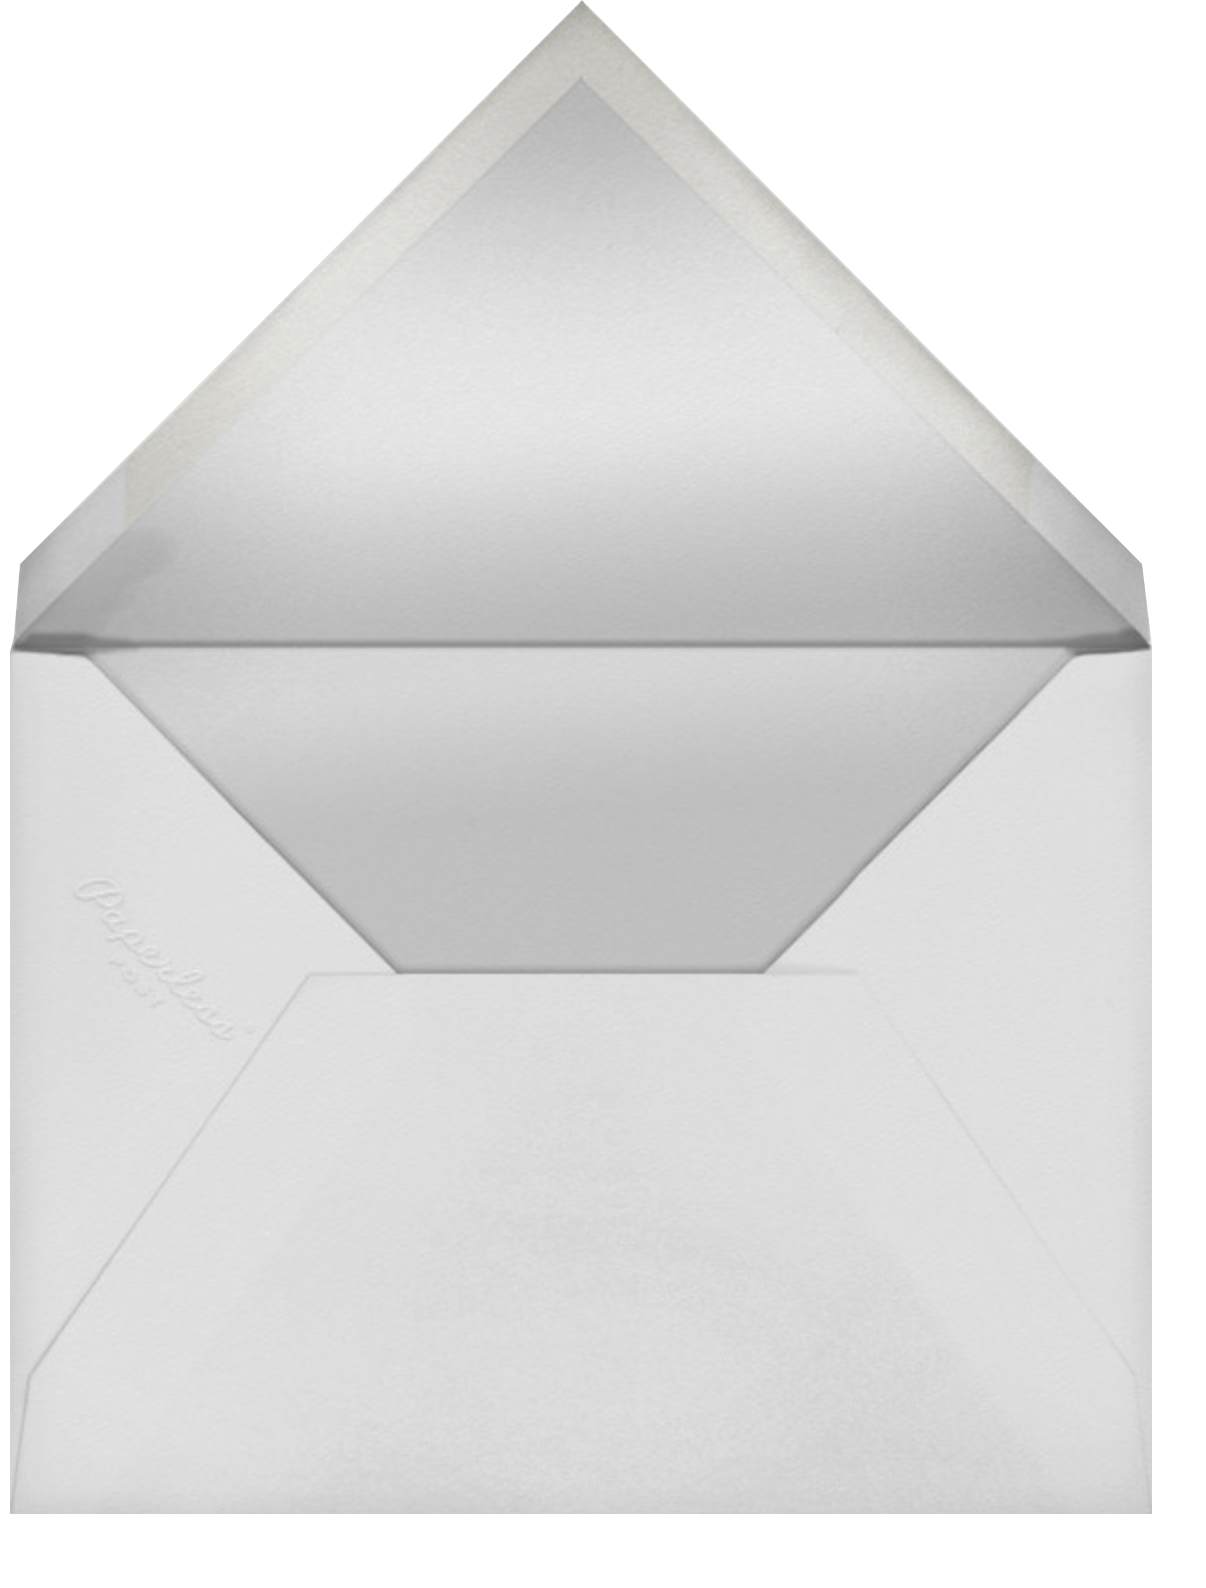 Goofball - Tan - Paperless Post - Father's Day - envelope back